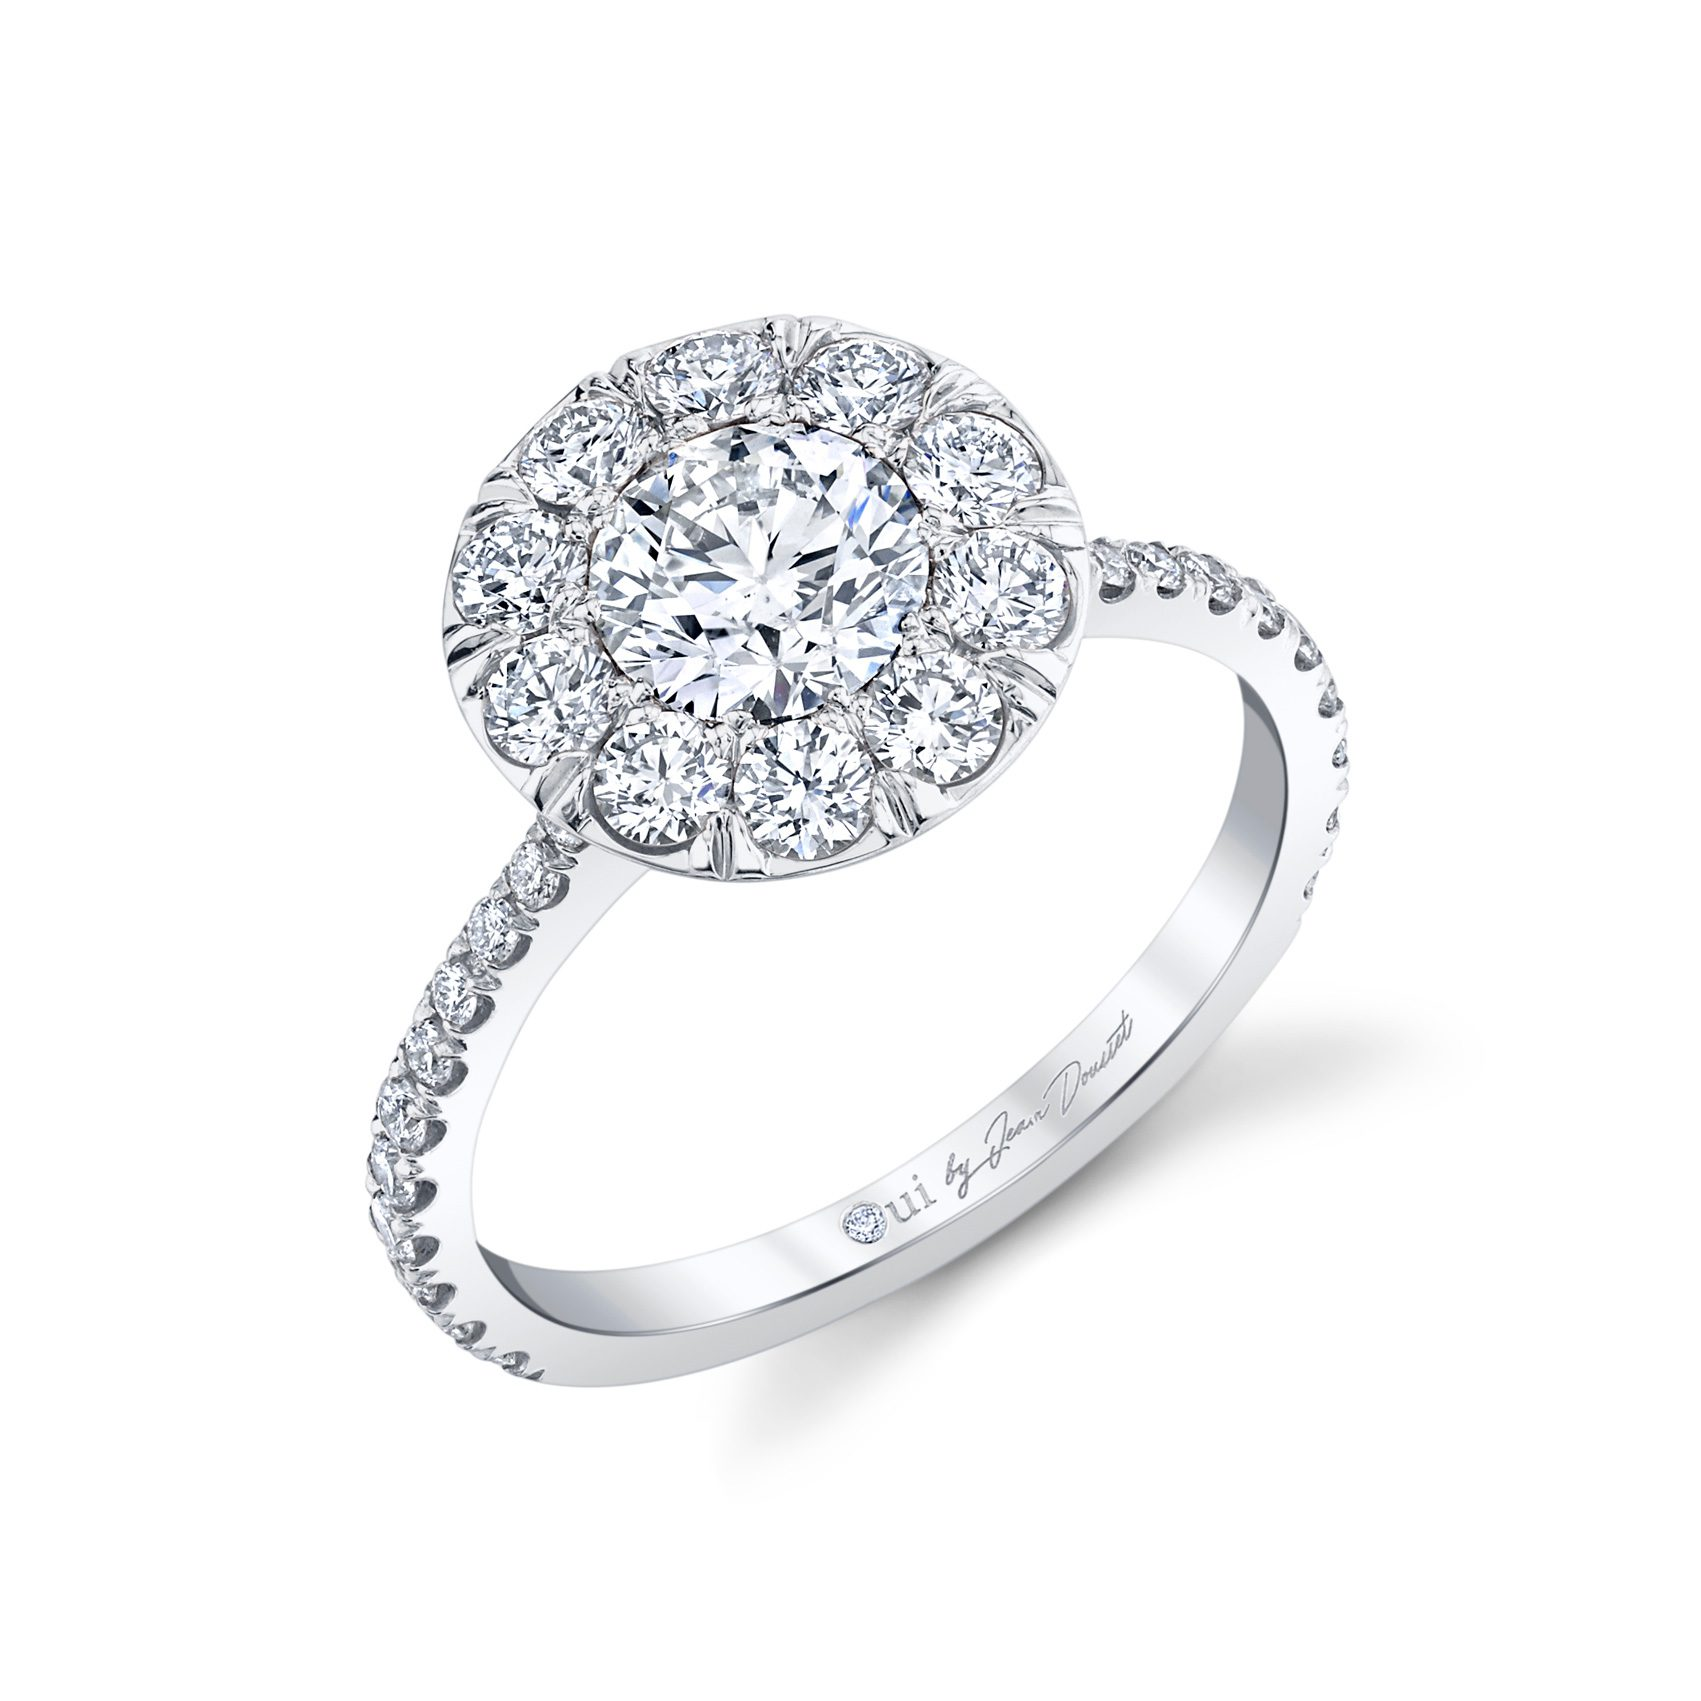 Eloise Round Brilliant Seamless Solitaire® Engagement Ring with diamond pavé in 18k White Gold Profile View by Oui by Jean Dousset